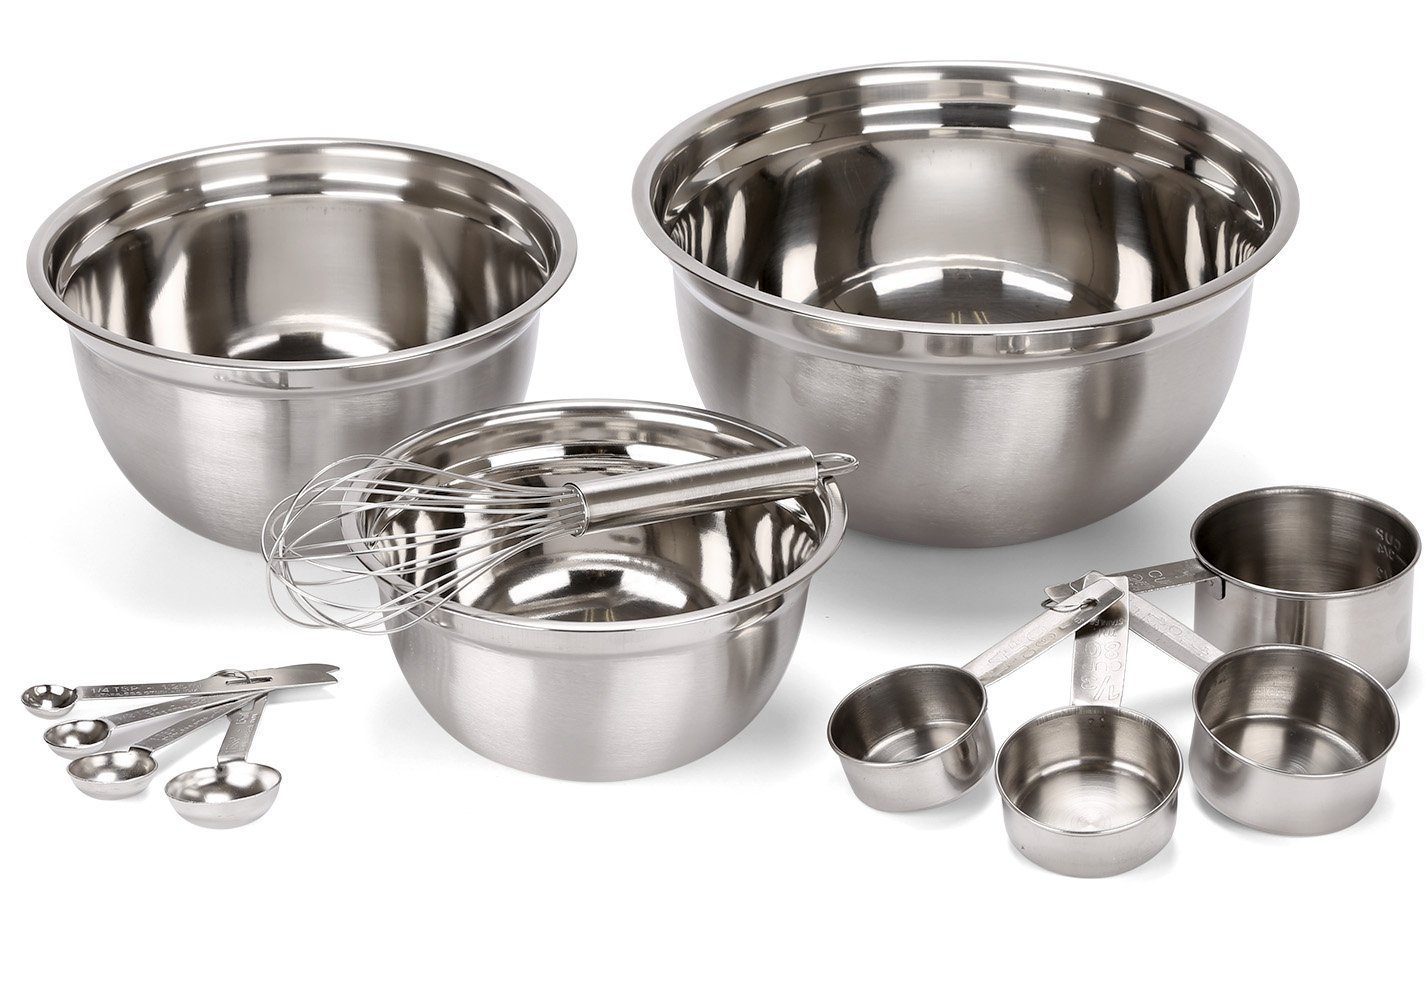 Estilo 12 Piece Stainless Steel Mixing Bowls, Includes Measuring Cups, Measuring Spoons And Barrel Whisk by Estilo